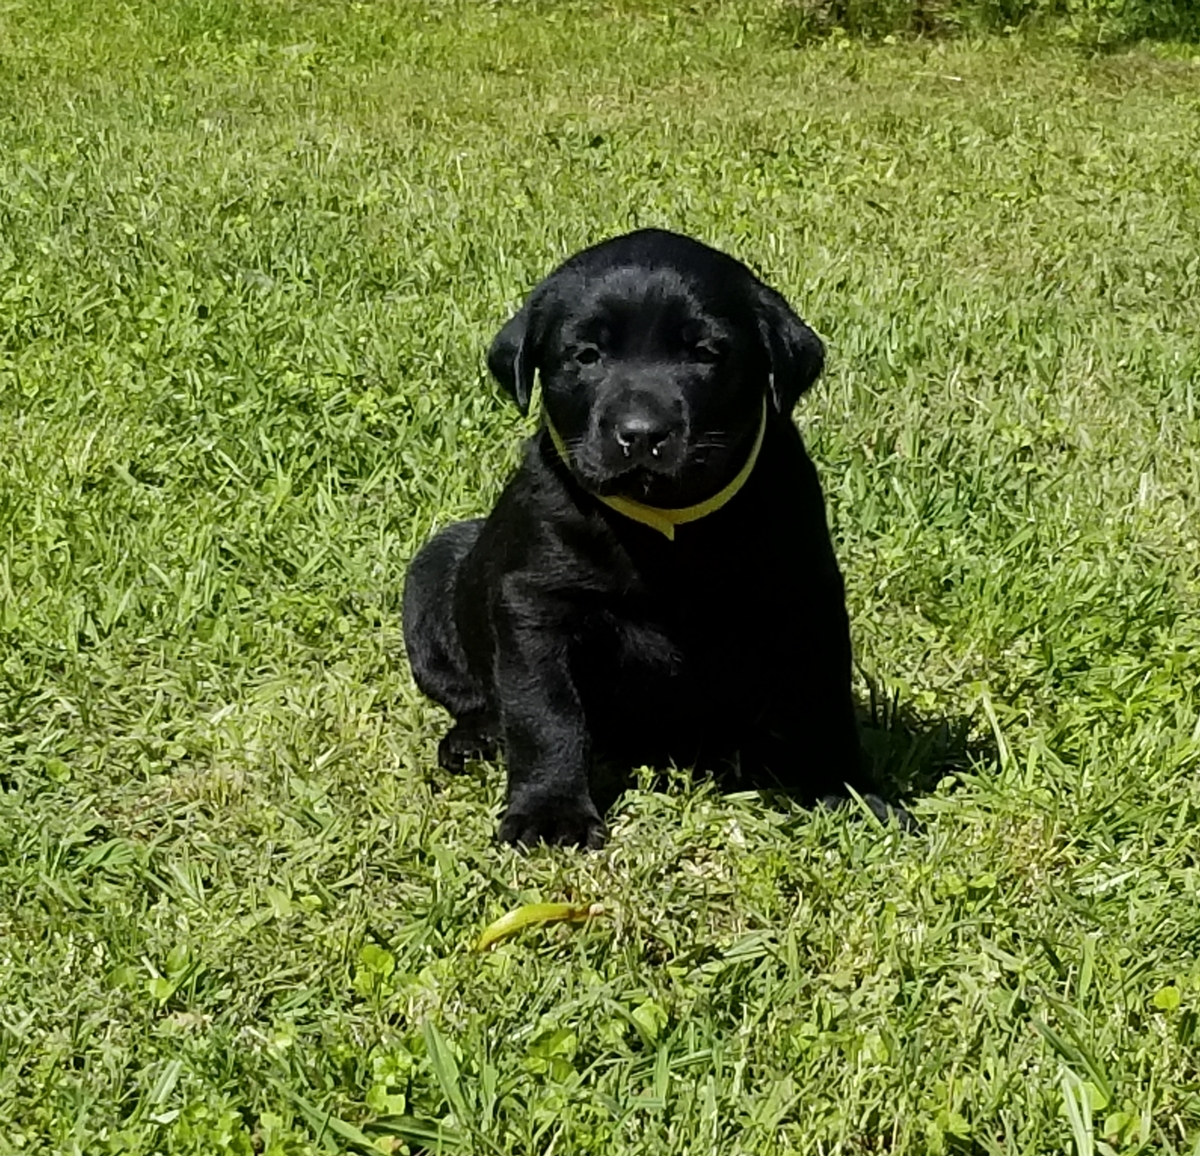 Coolwaters Bad Bad Leroy Brown QAA MH MNH x SHR Black Magic Potion of RFC (Coolwater Kennel Lineage Litter) 7